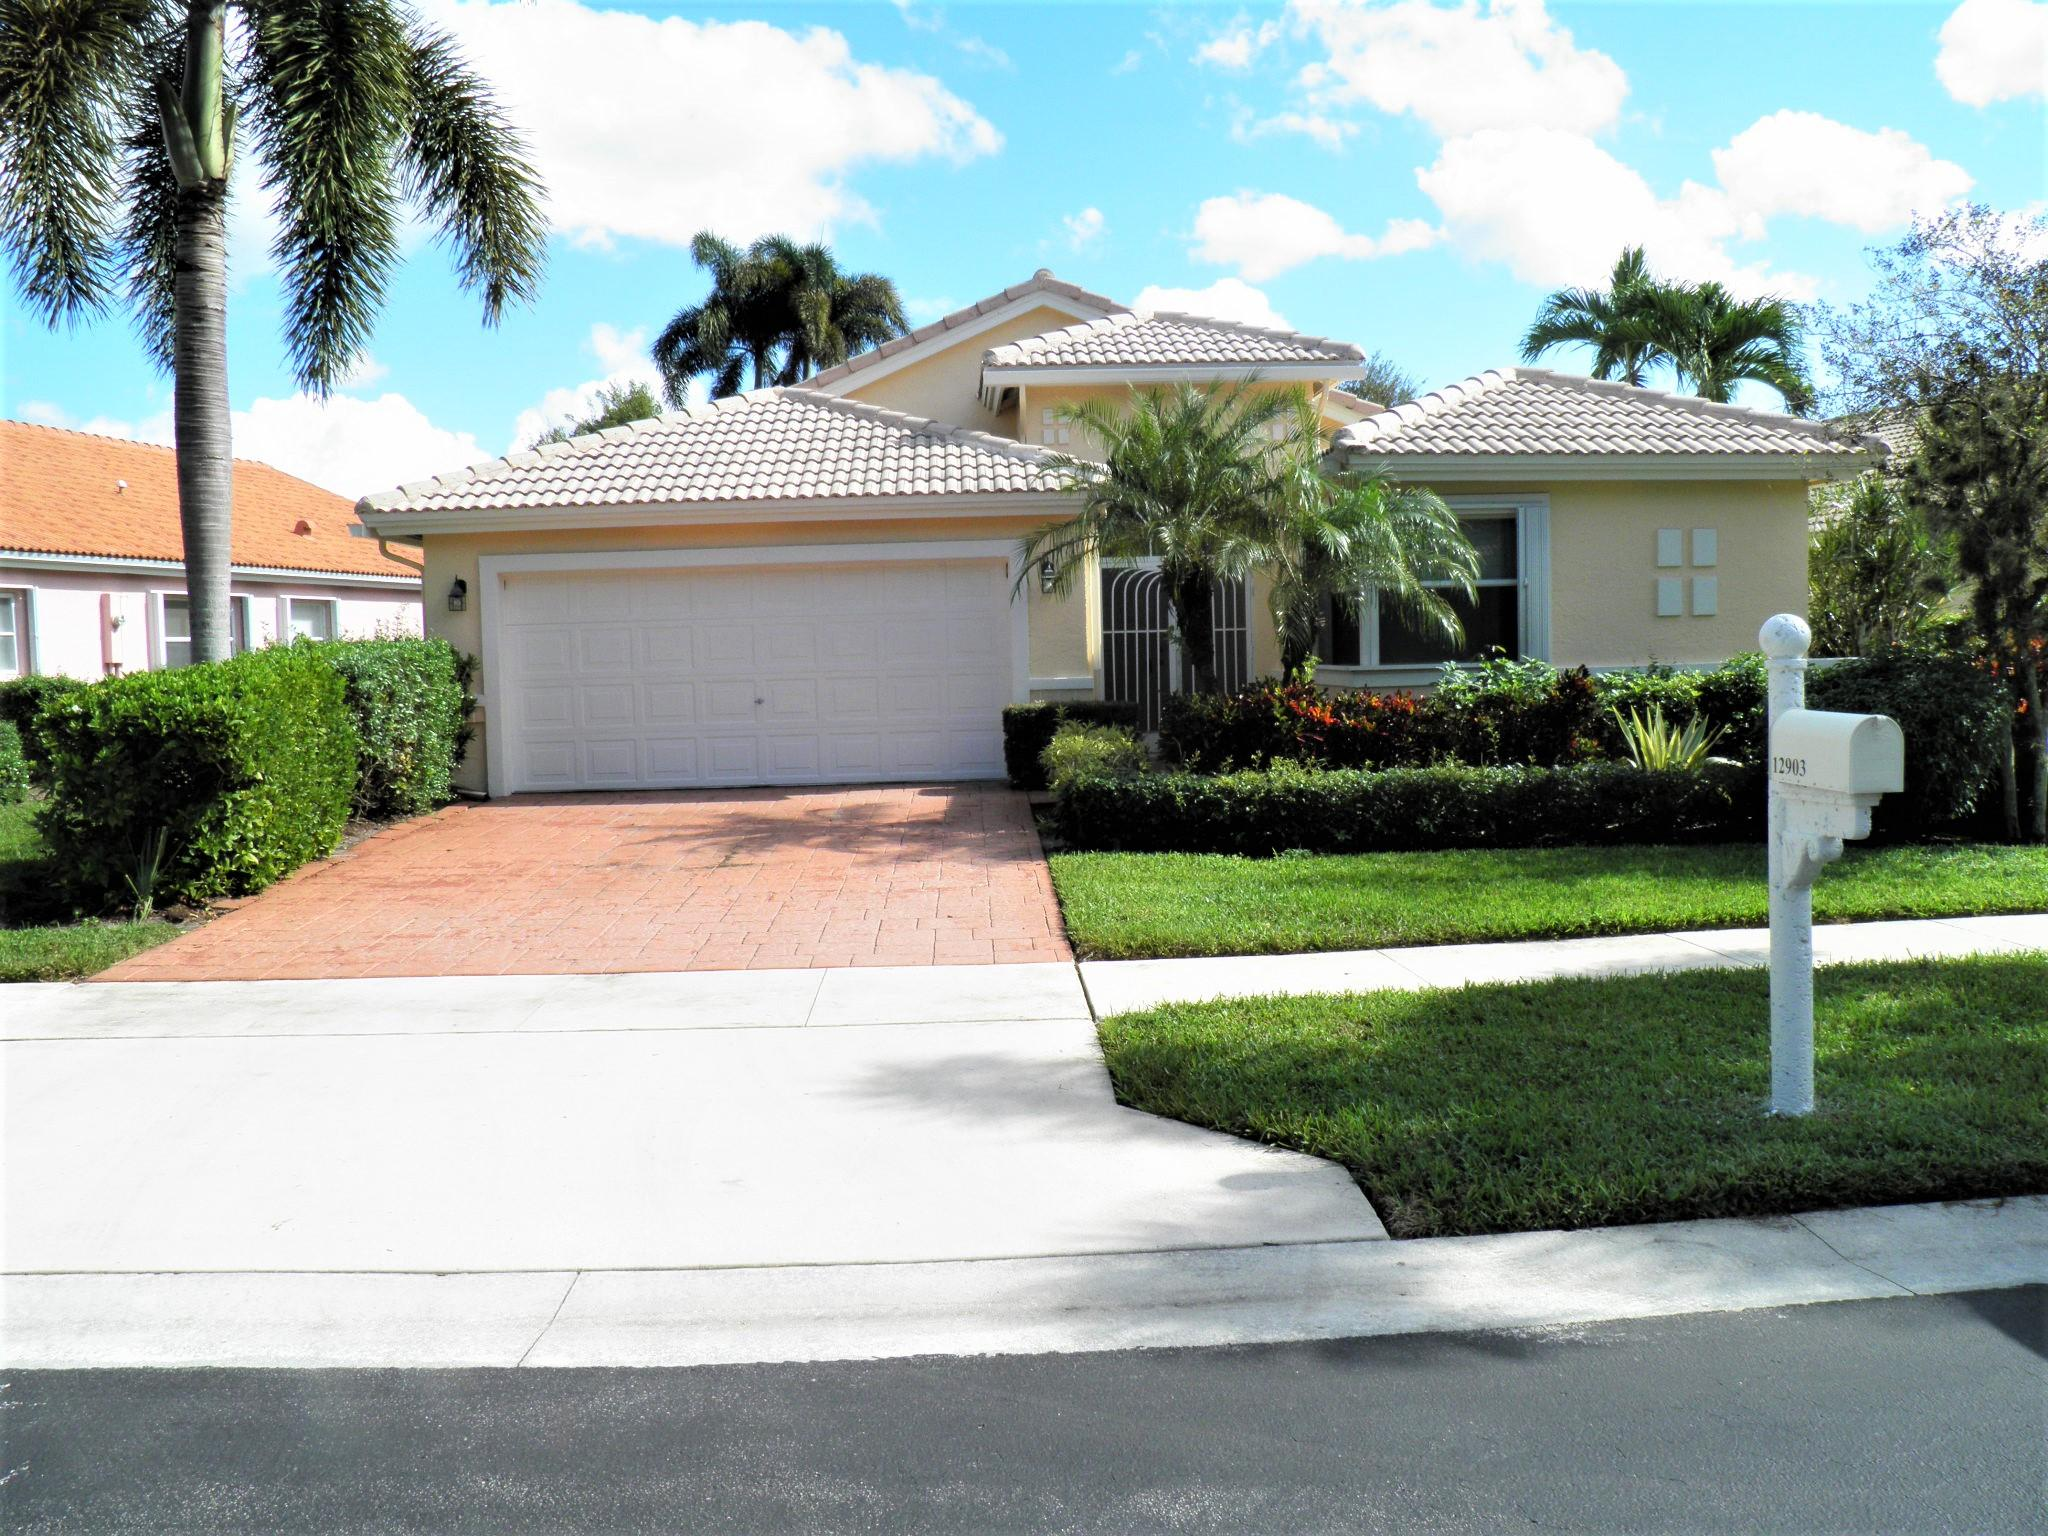 CORAL LAKES III/REGENCY COVE NORTH home 12903 Coral Lakes Drive Boynton Beach FL 33437